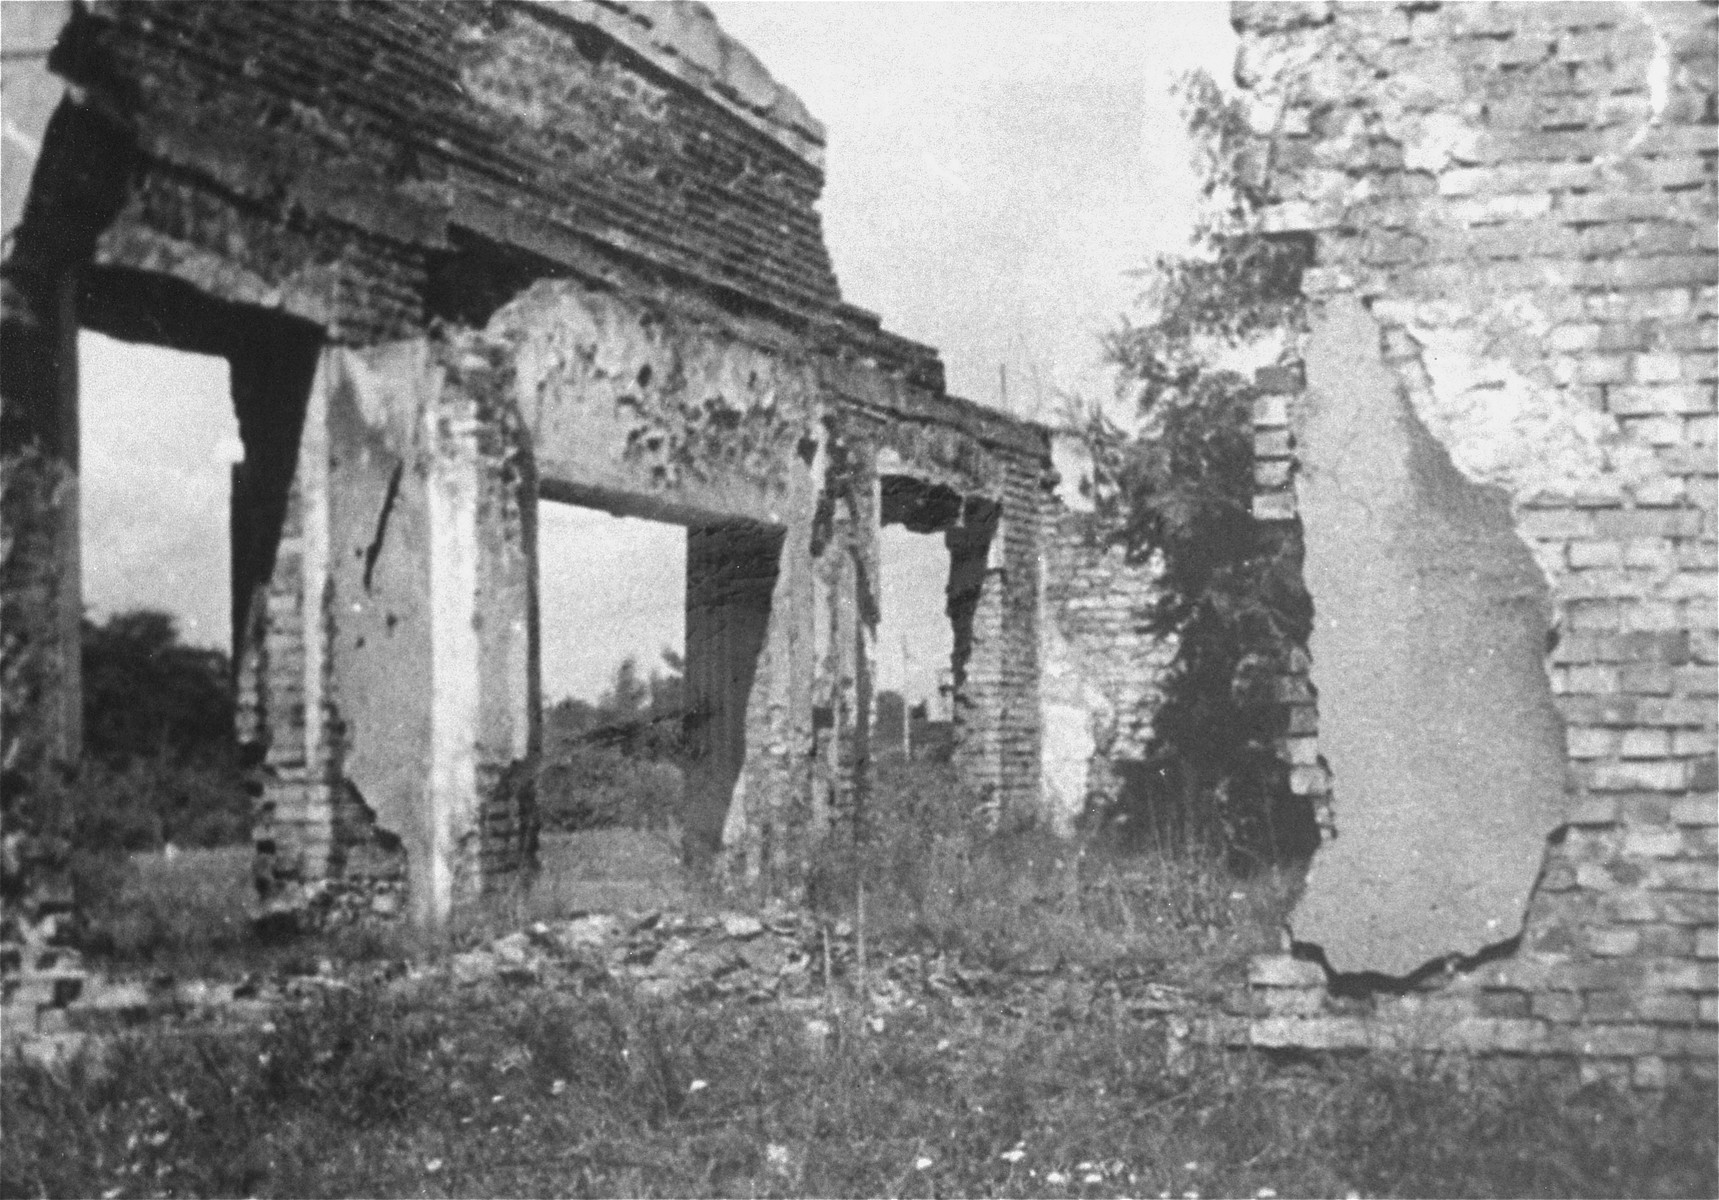 Ruins of a funeral chapel in the Jewish cemetery in Czestochowa.